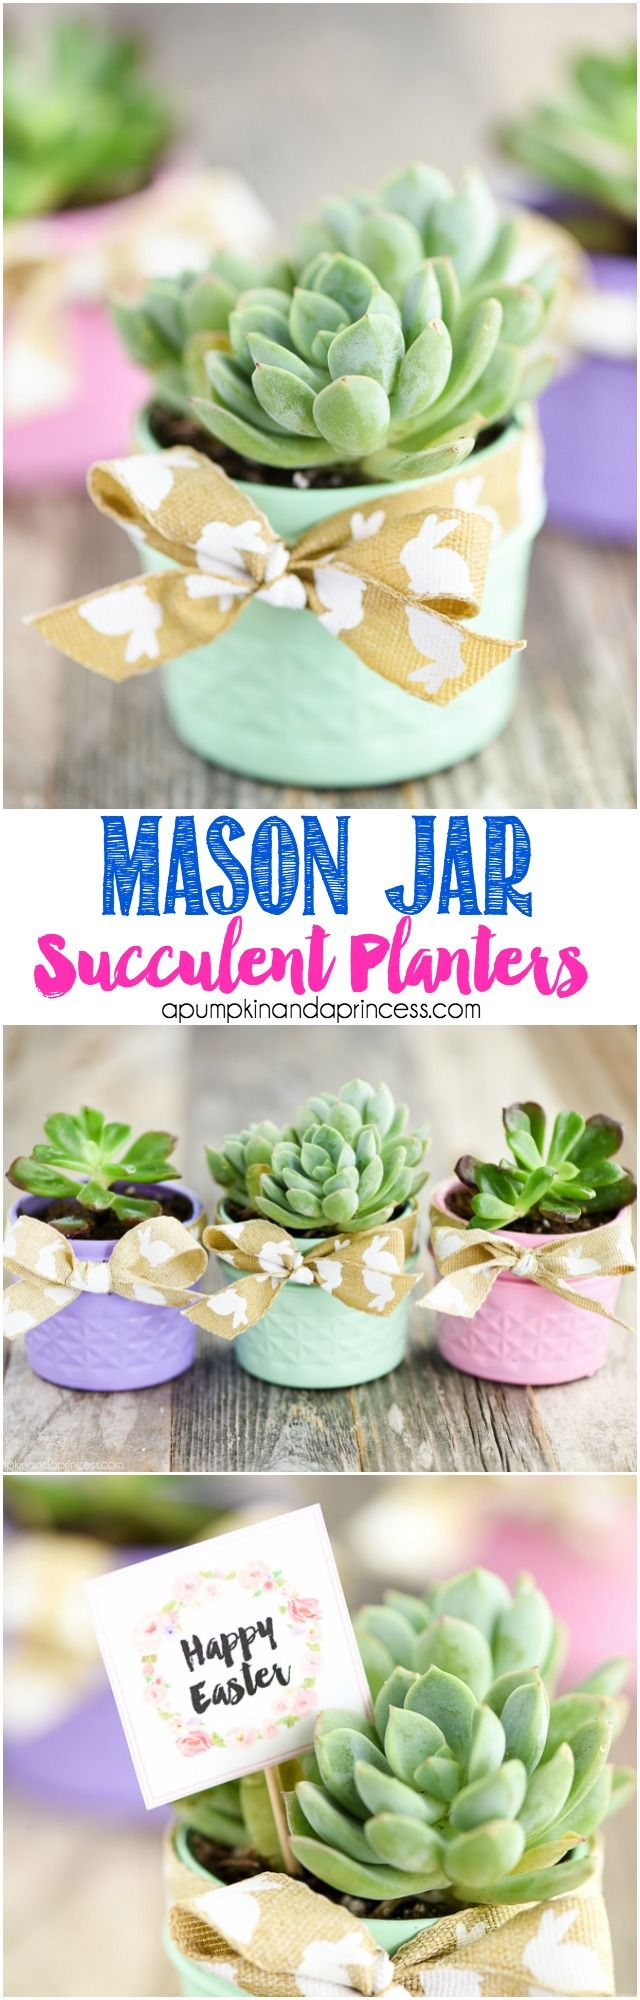 DIY Mason Jar Succulent Planters - turn small mason jars into succulent planters with a little paint, soil, and succulents. Add a ribbon and FREE printable Easter tag to give as gifts.